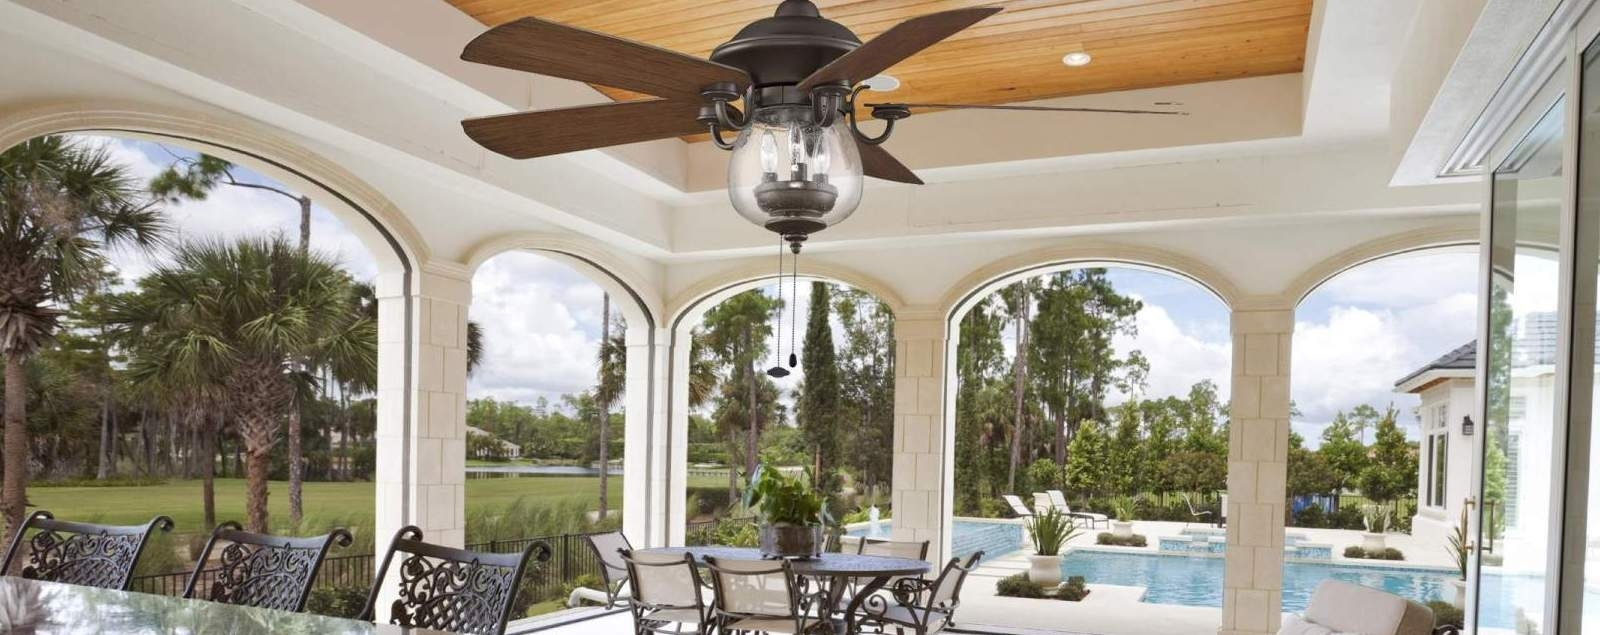 Outdoor Electric Ceiling Fans With Regard To Latest Outdoor Ceiling Fans – Shop Wet, Dry, And Damp Rated Outdoor Fans (View 15 of 20)